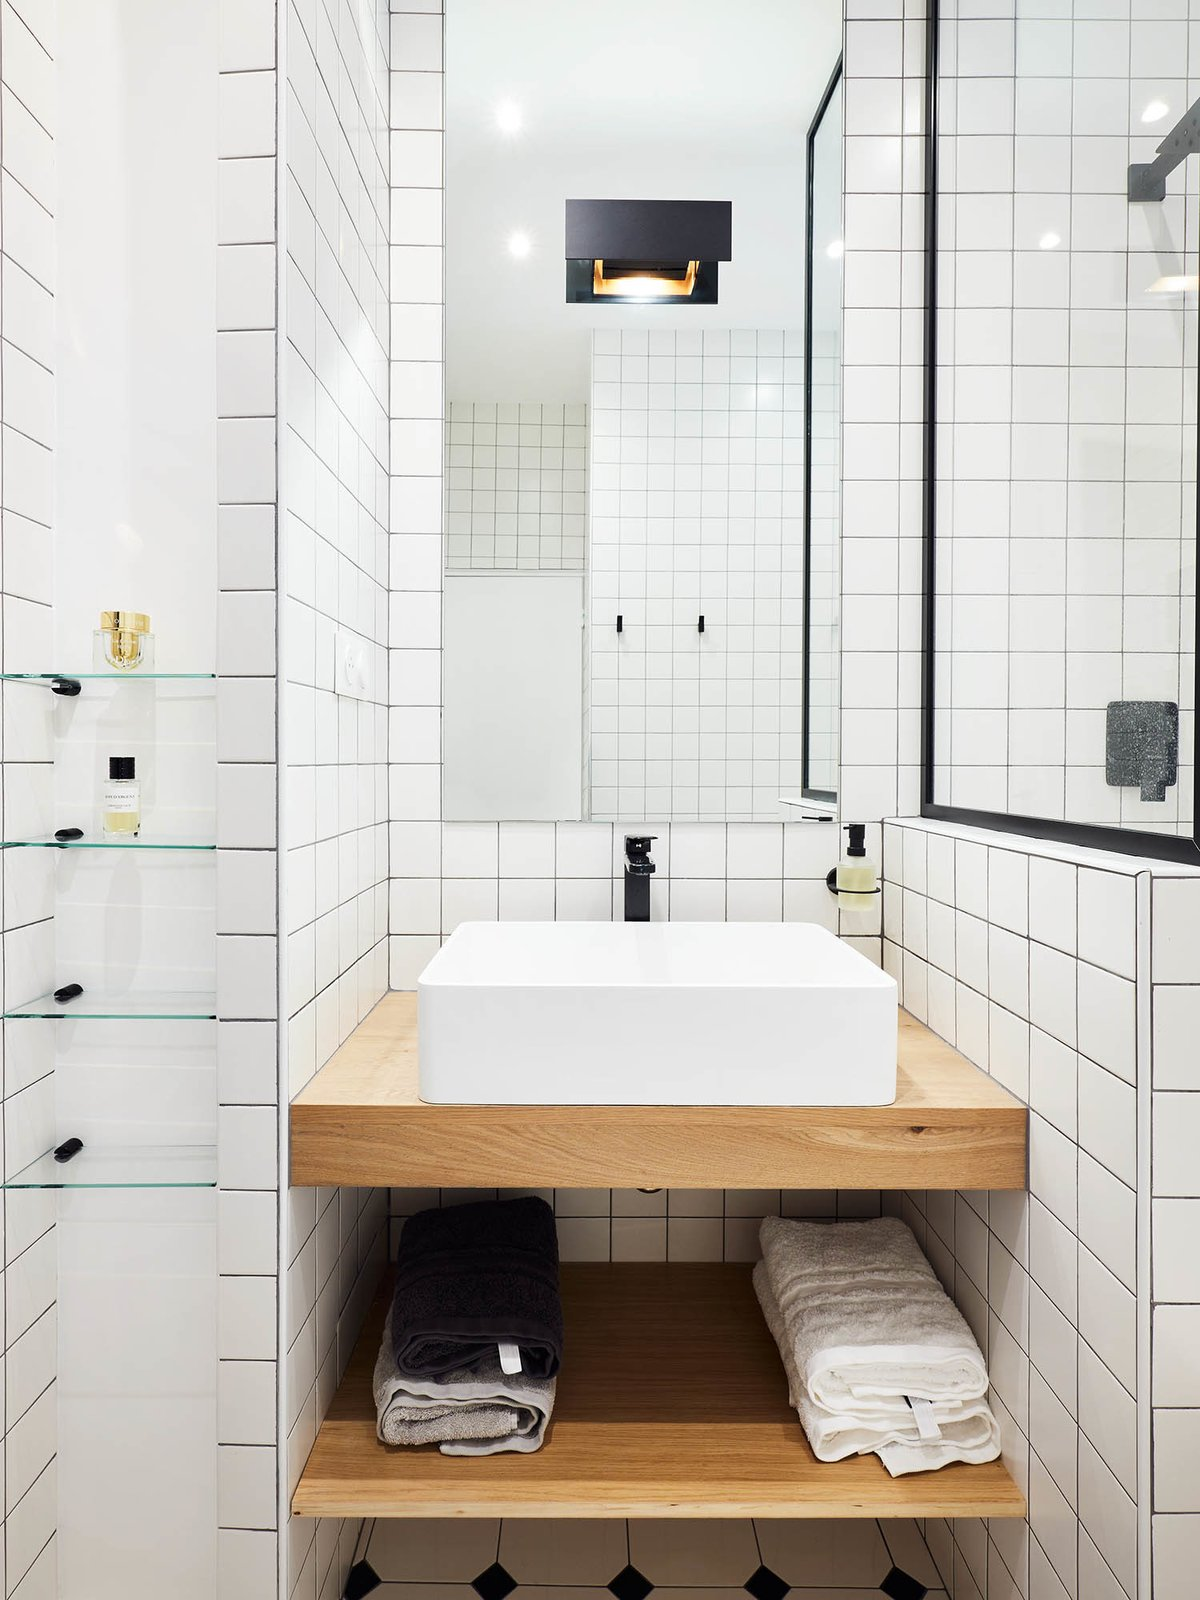 "Bath, Wood, Vessel, Corner, Porcelain Tile, Wall, Porcelain Tile, and Alcove ""I optimized every inch of space in the bathroom,"" says Petillaut, who employed a black-and-white palette and geometric lines that make the room feel more voluminous.   Bath Corner Vessel Alcove Photos from Budget Breakdown: A Muddled Parisian Pad Gets a Sleek Makeover for $117K"